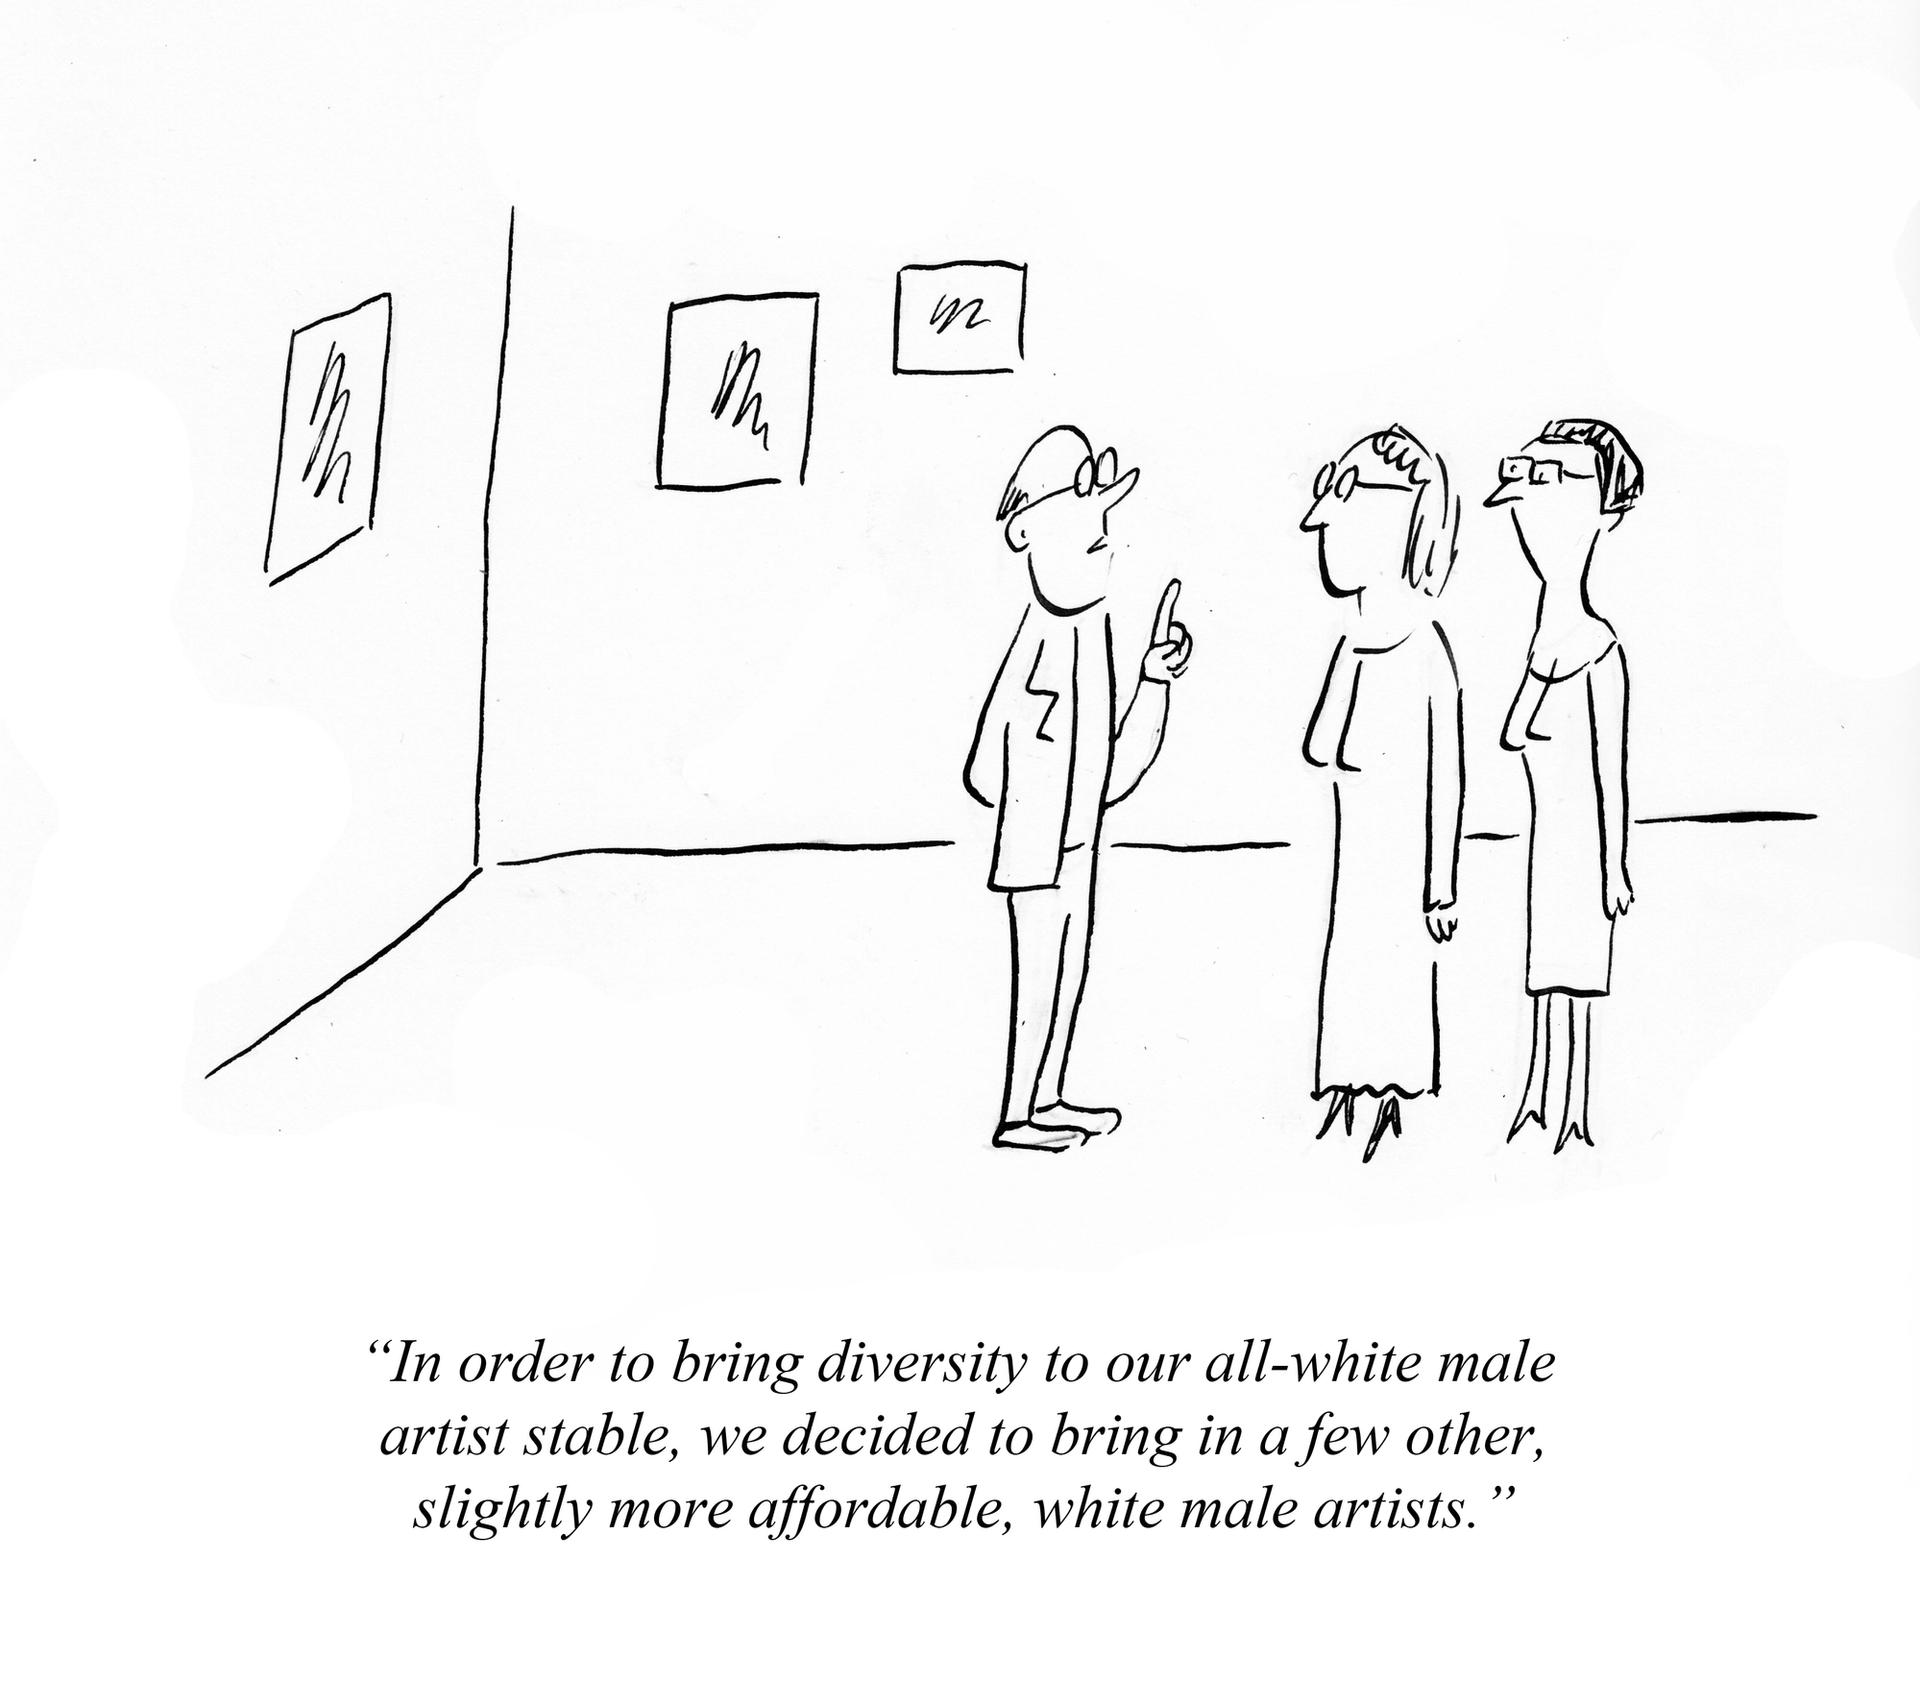 """""""In order to bring diversity to our all-white male artist stable, we decided to bring in a few other, slightly more affordable, white male artists."""" Pablo Helguera"""